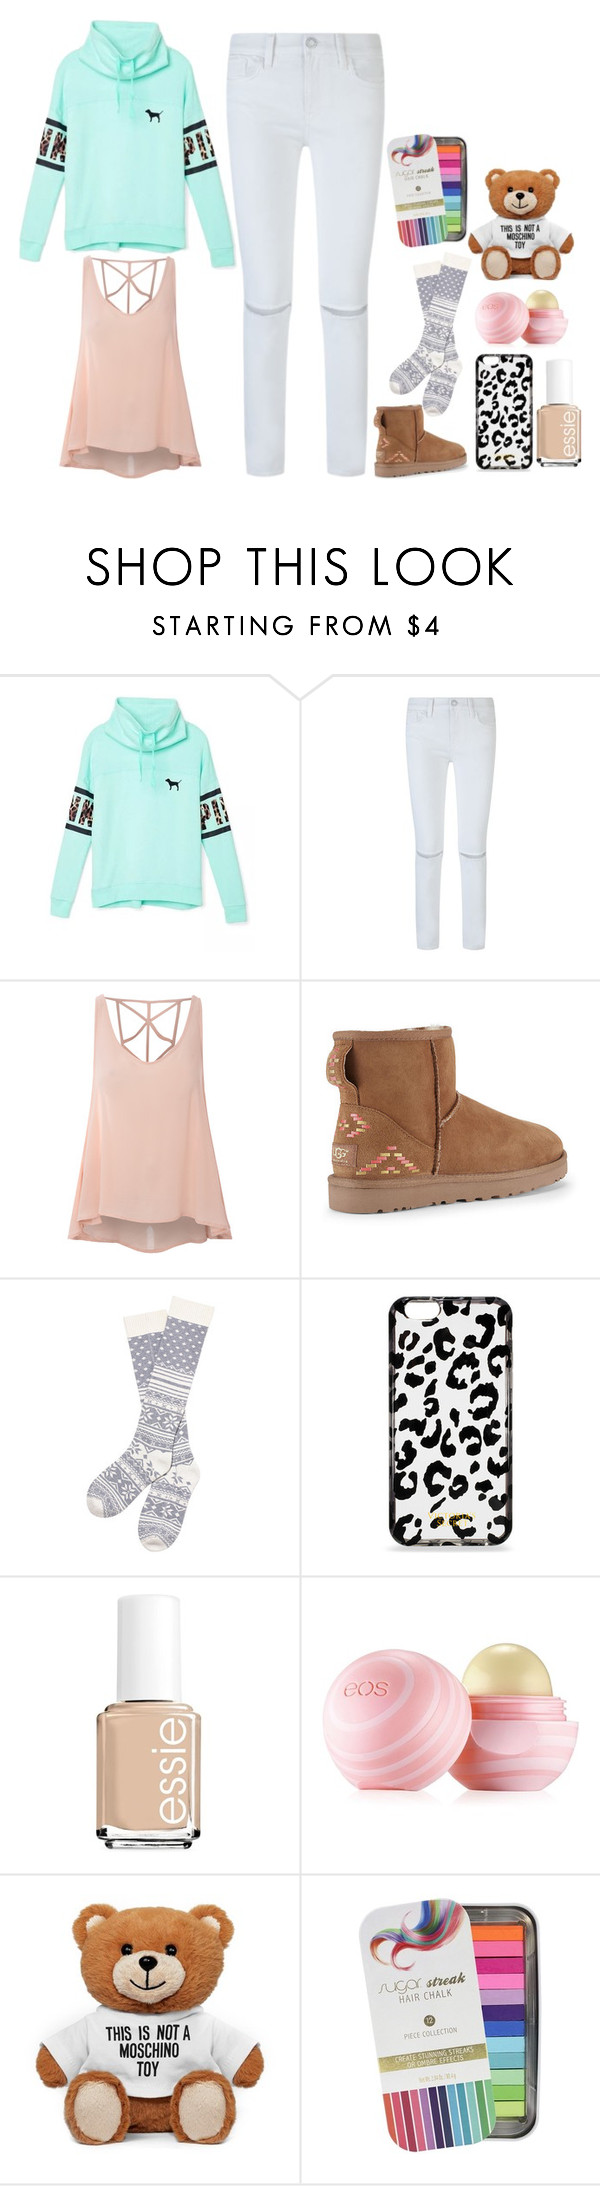 """Untitled #72"" by emilychen-778 on Polyvore featuring Victoria's Secret, Rebecca Minkoff, Glamorous, UGG Australia, Essie, Eos, Moschino, Sugar, women's clothing and women"